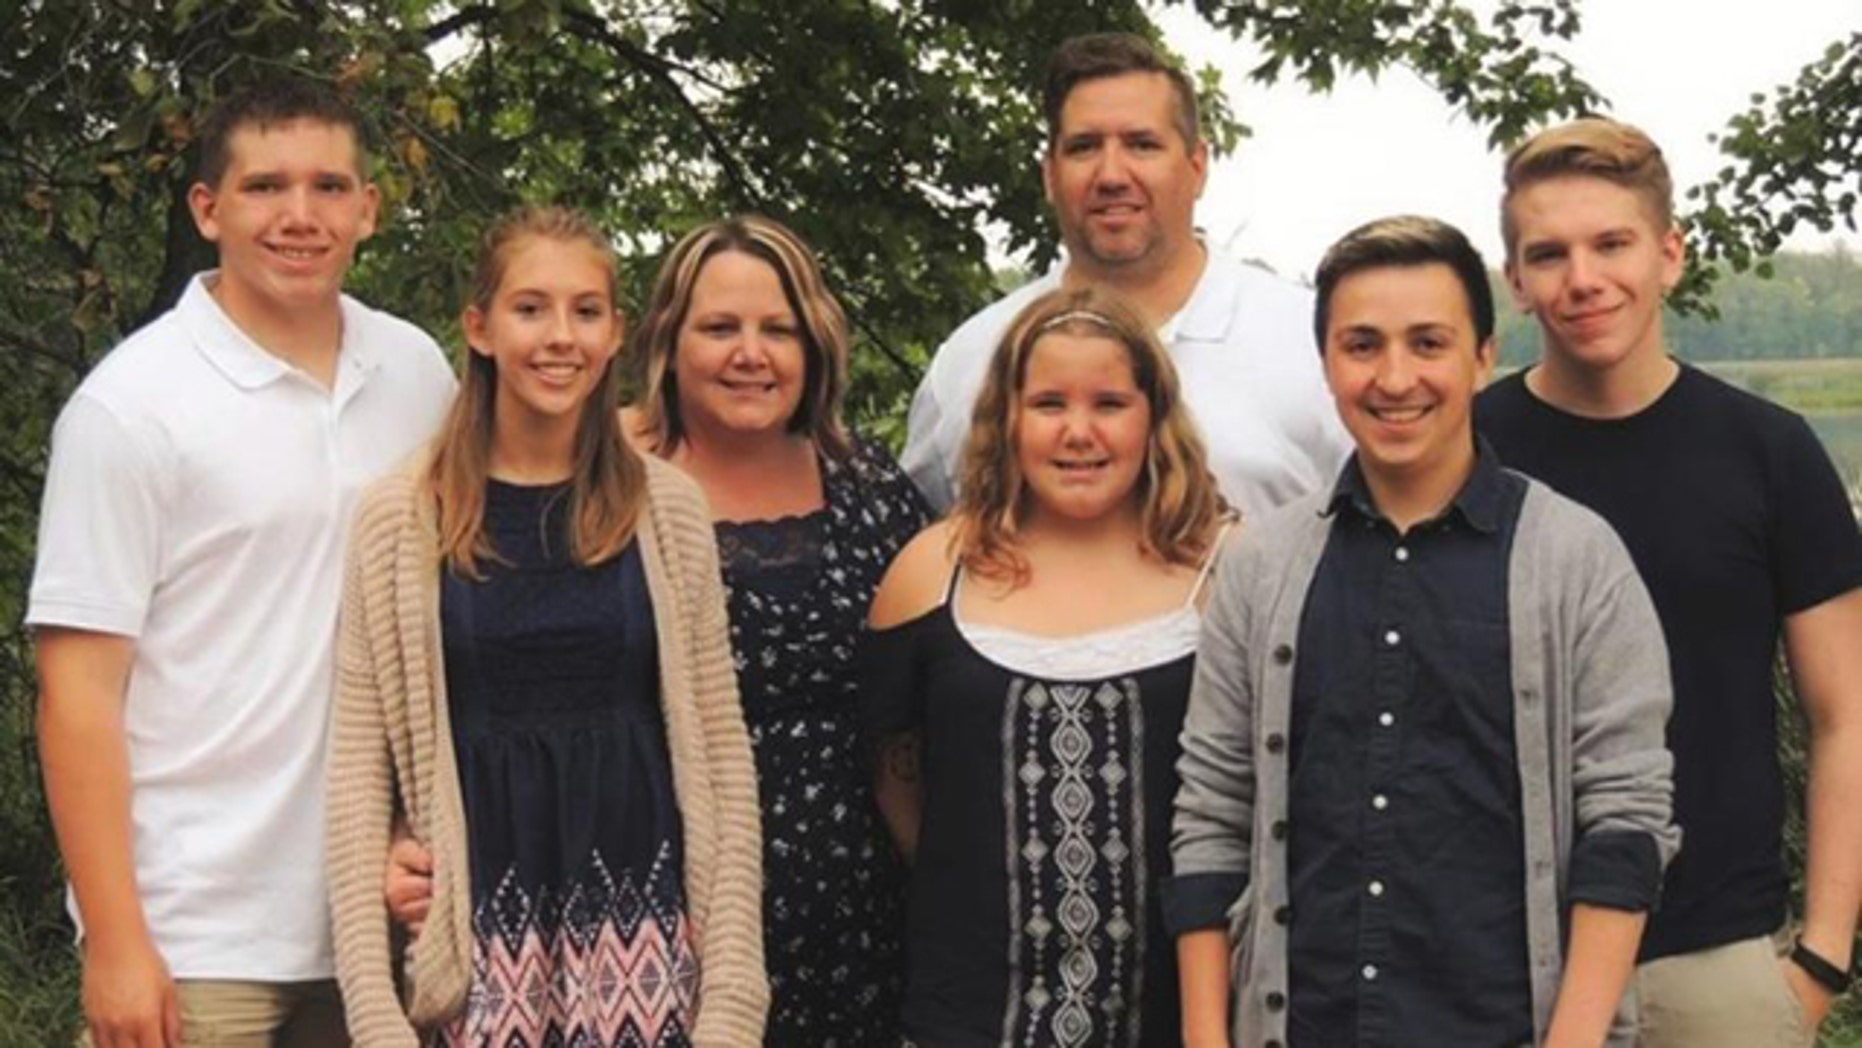 This undated photo shows the Peterson family of Ada, Minn. Carter Peterson, far left, was killed in a car crash that Randy, third from right, responded to as a volunteer firefighter